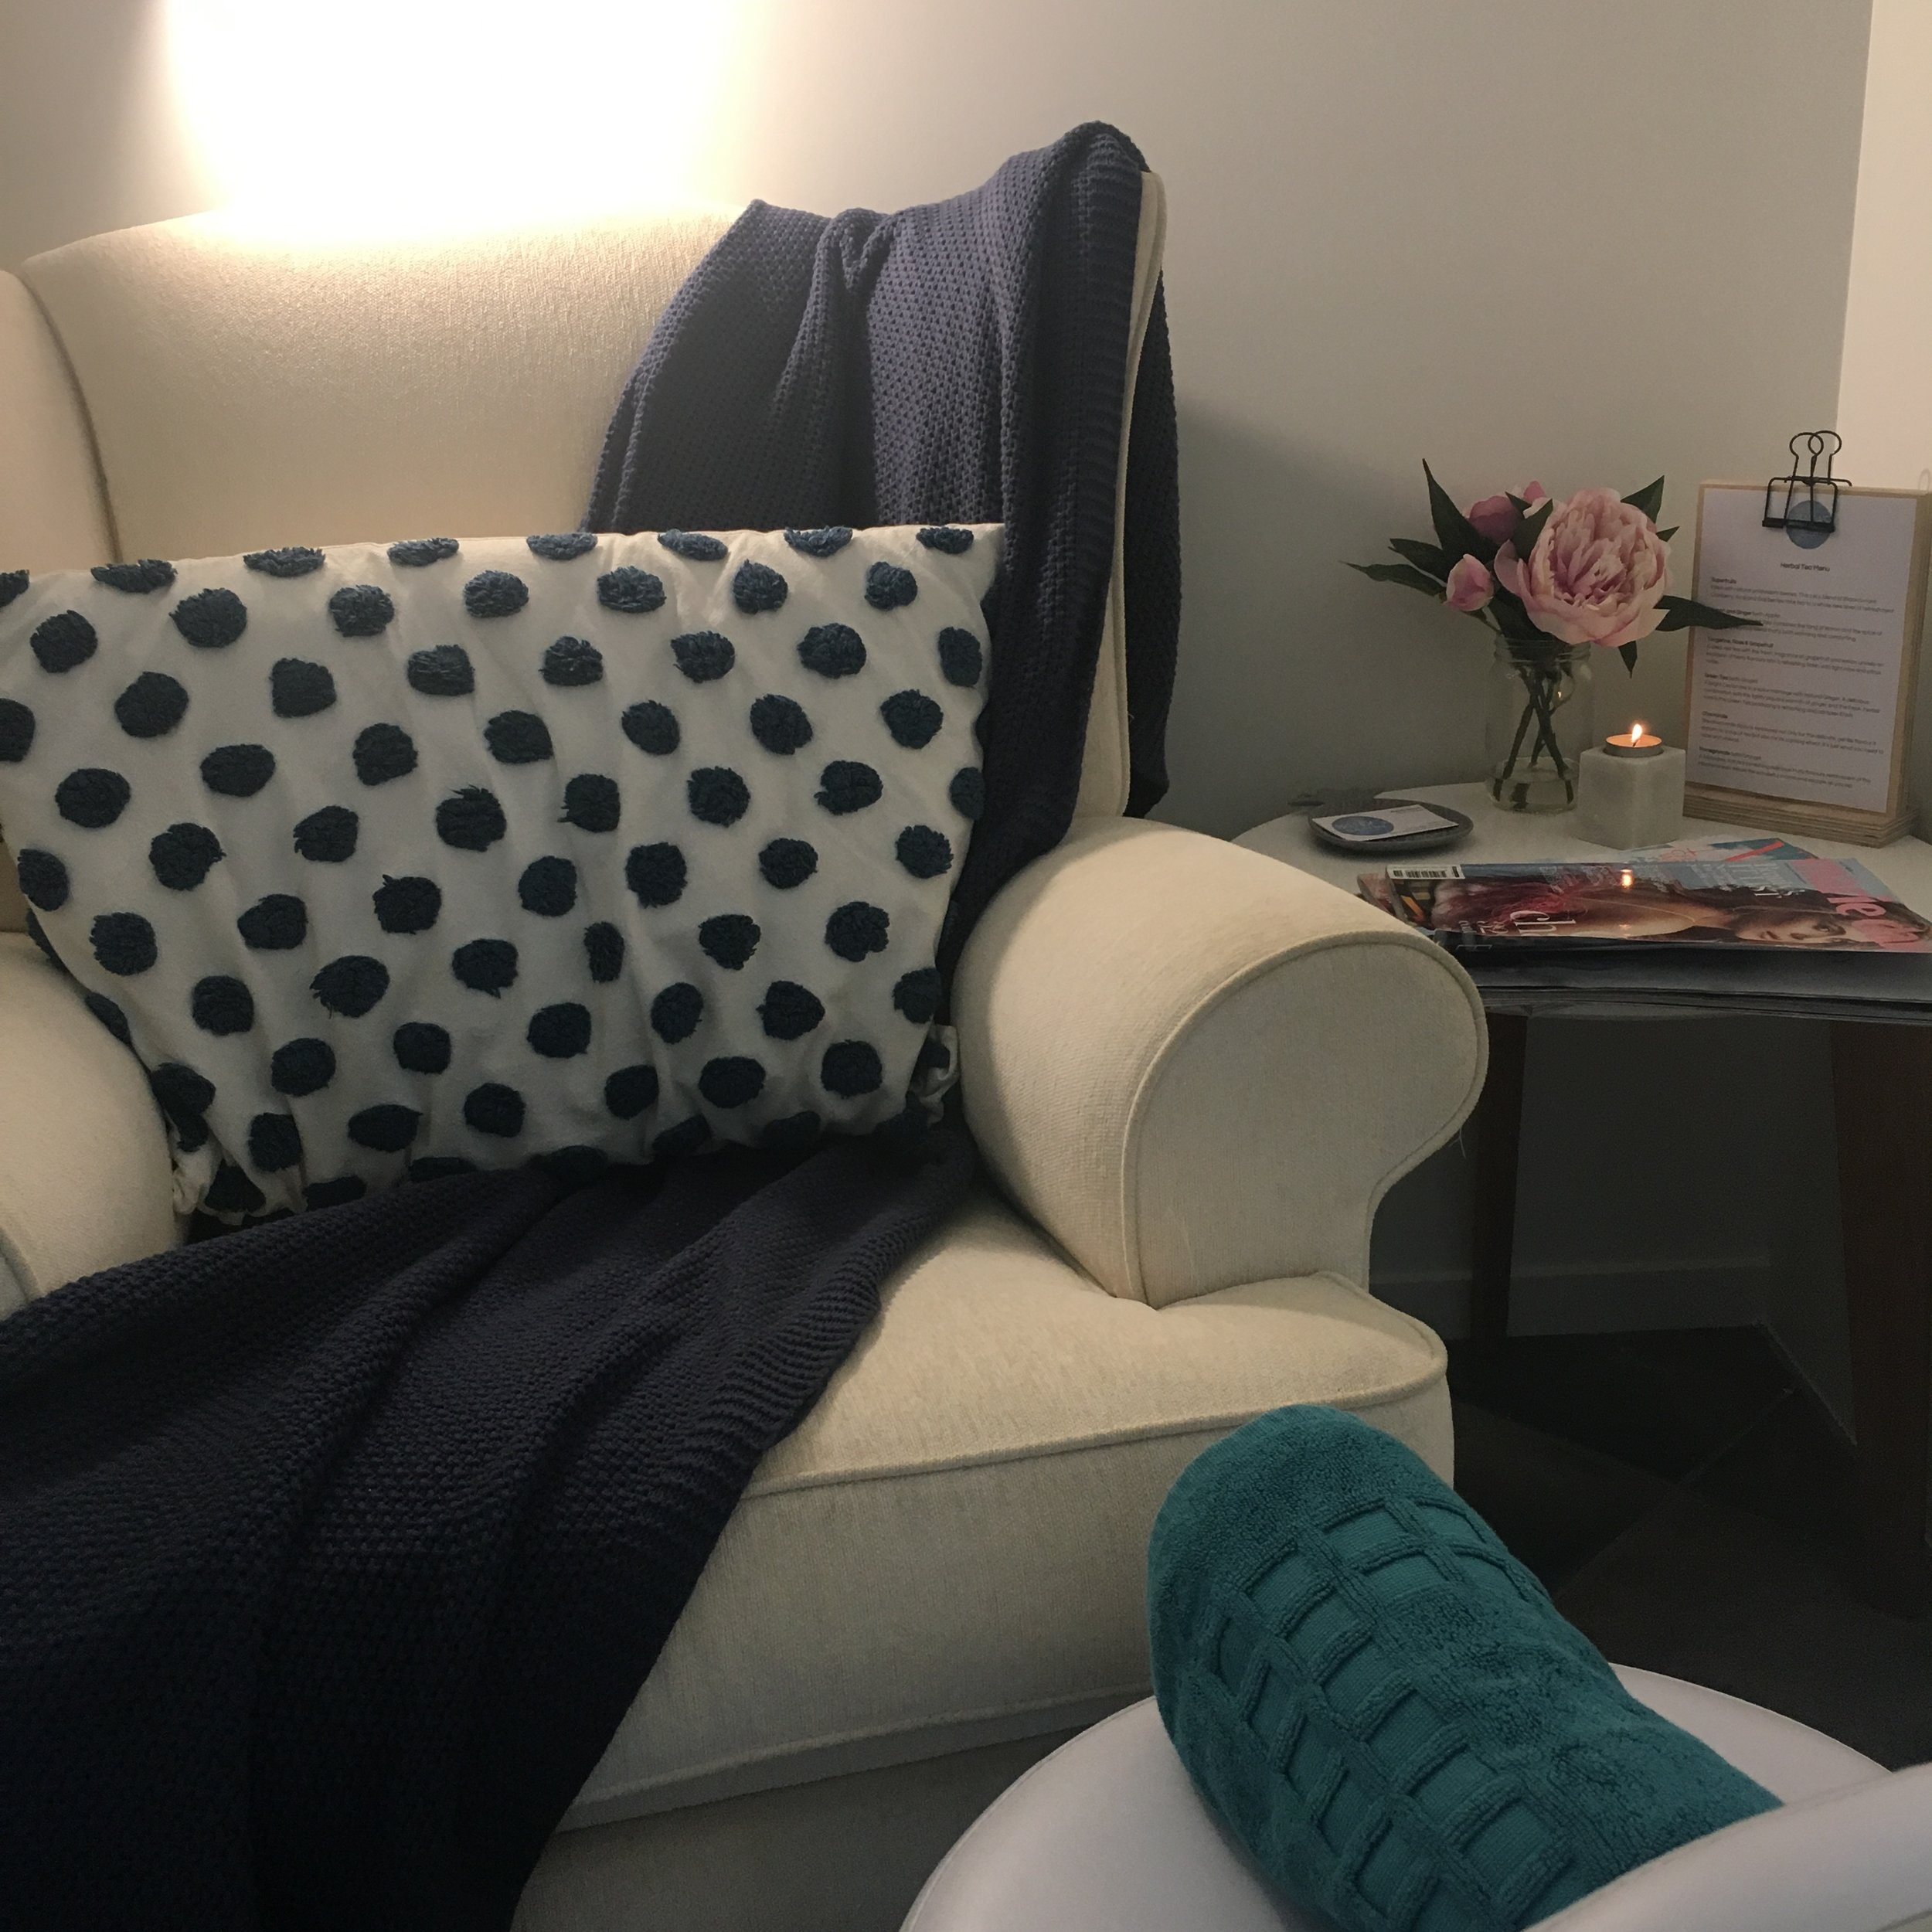 Put your feet up and enjoy a relaxing foot massage or pedicure